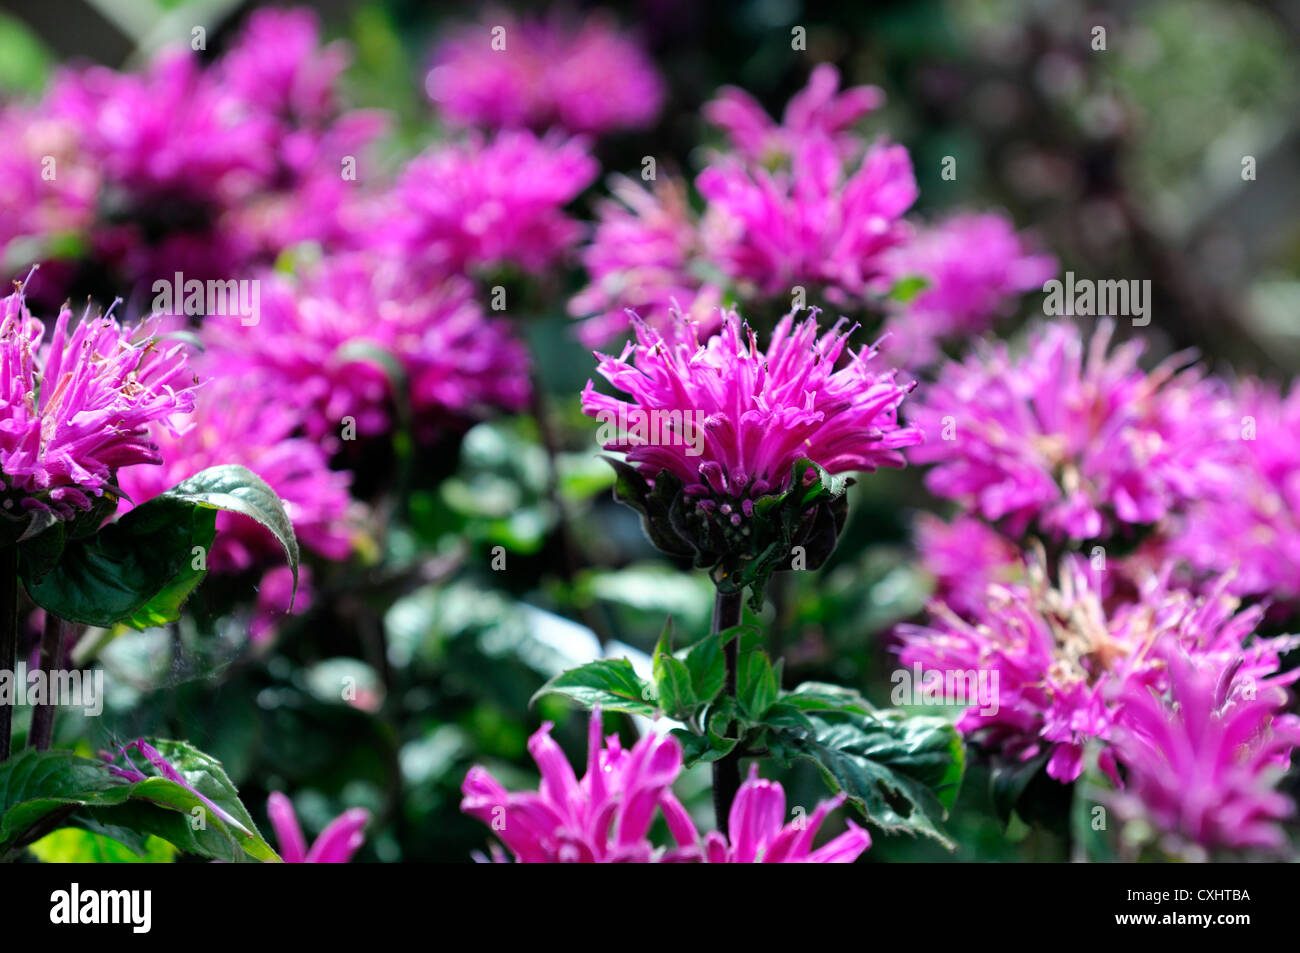 monarda didyma cranberry lace pink flower bee balm bergamot flowers perennials bloom blossom bee insect friendly Stock Photo